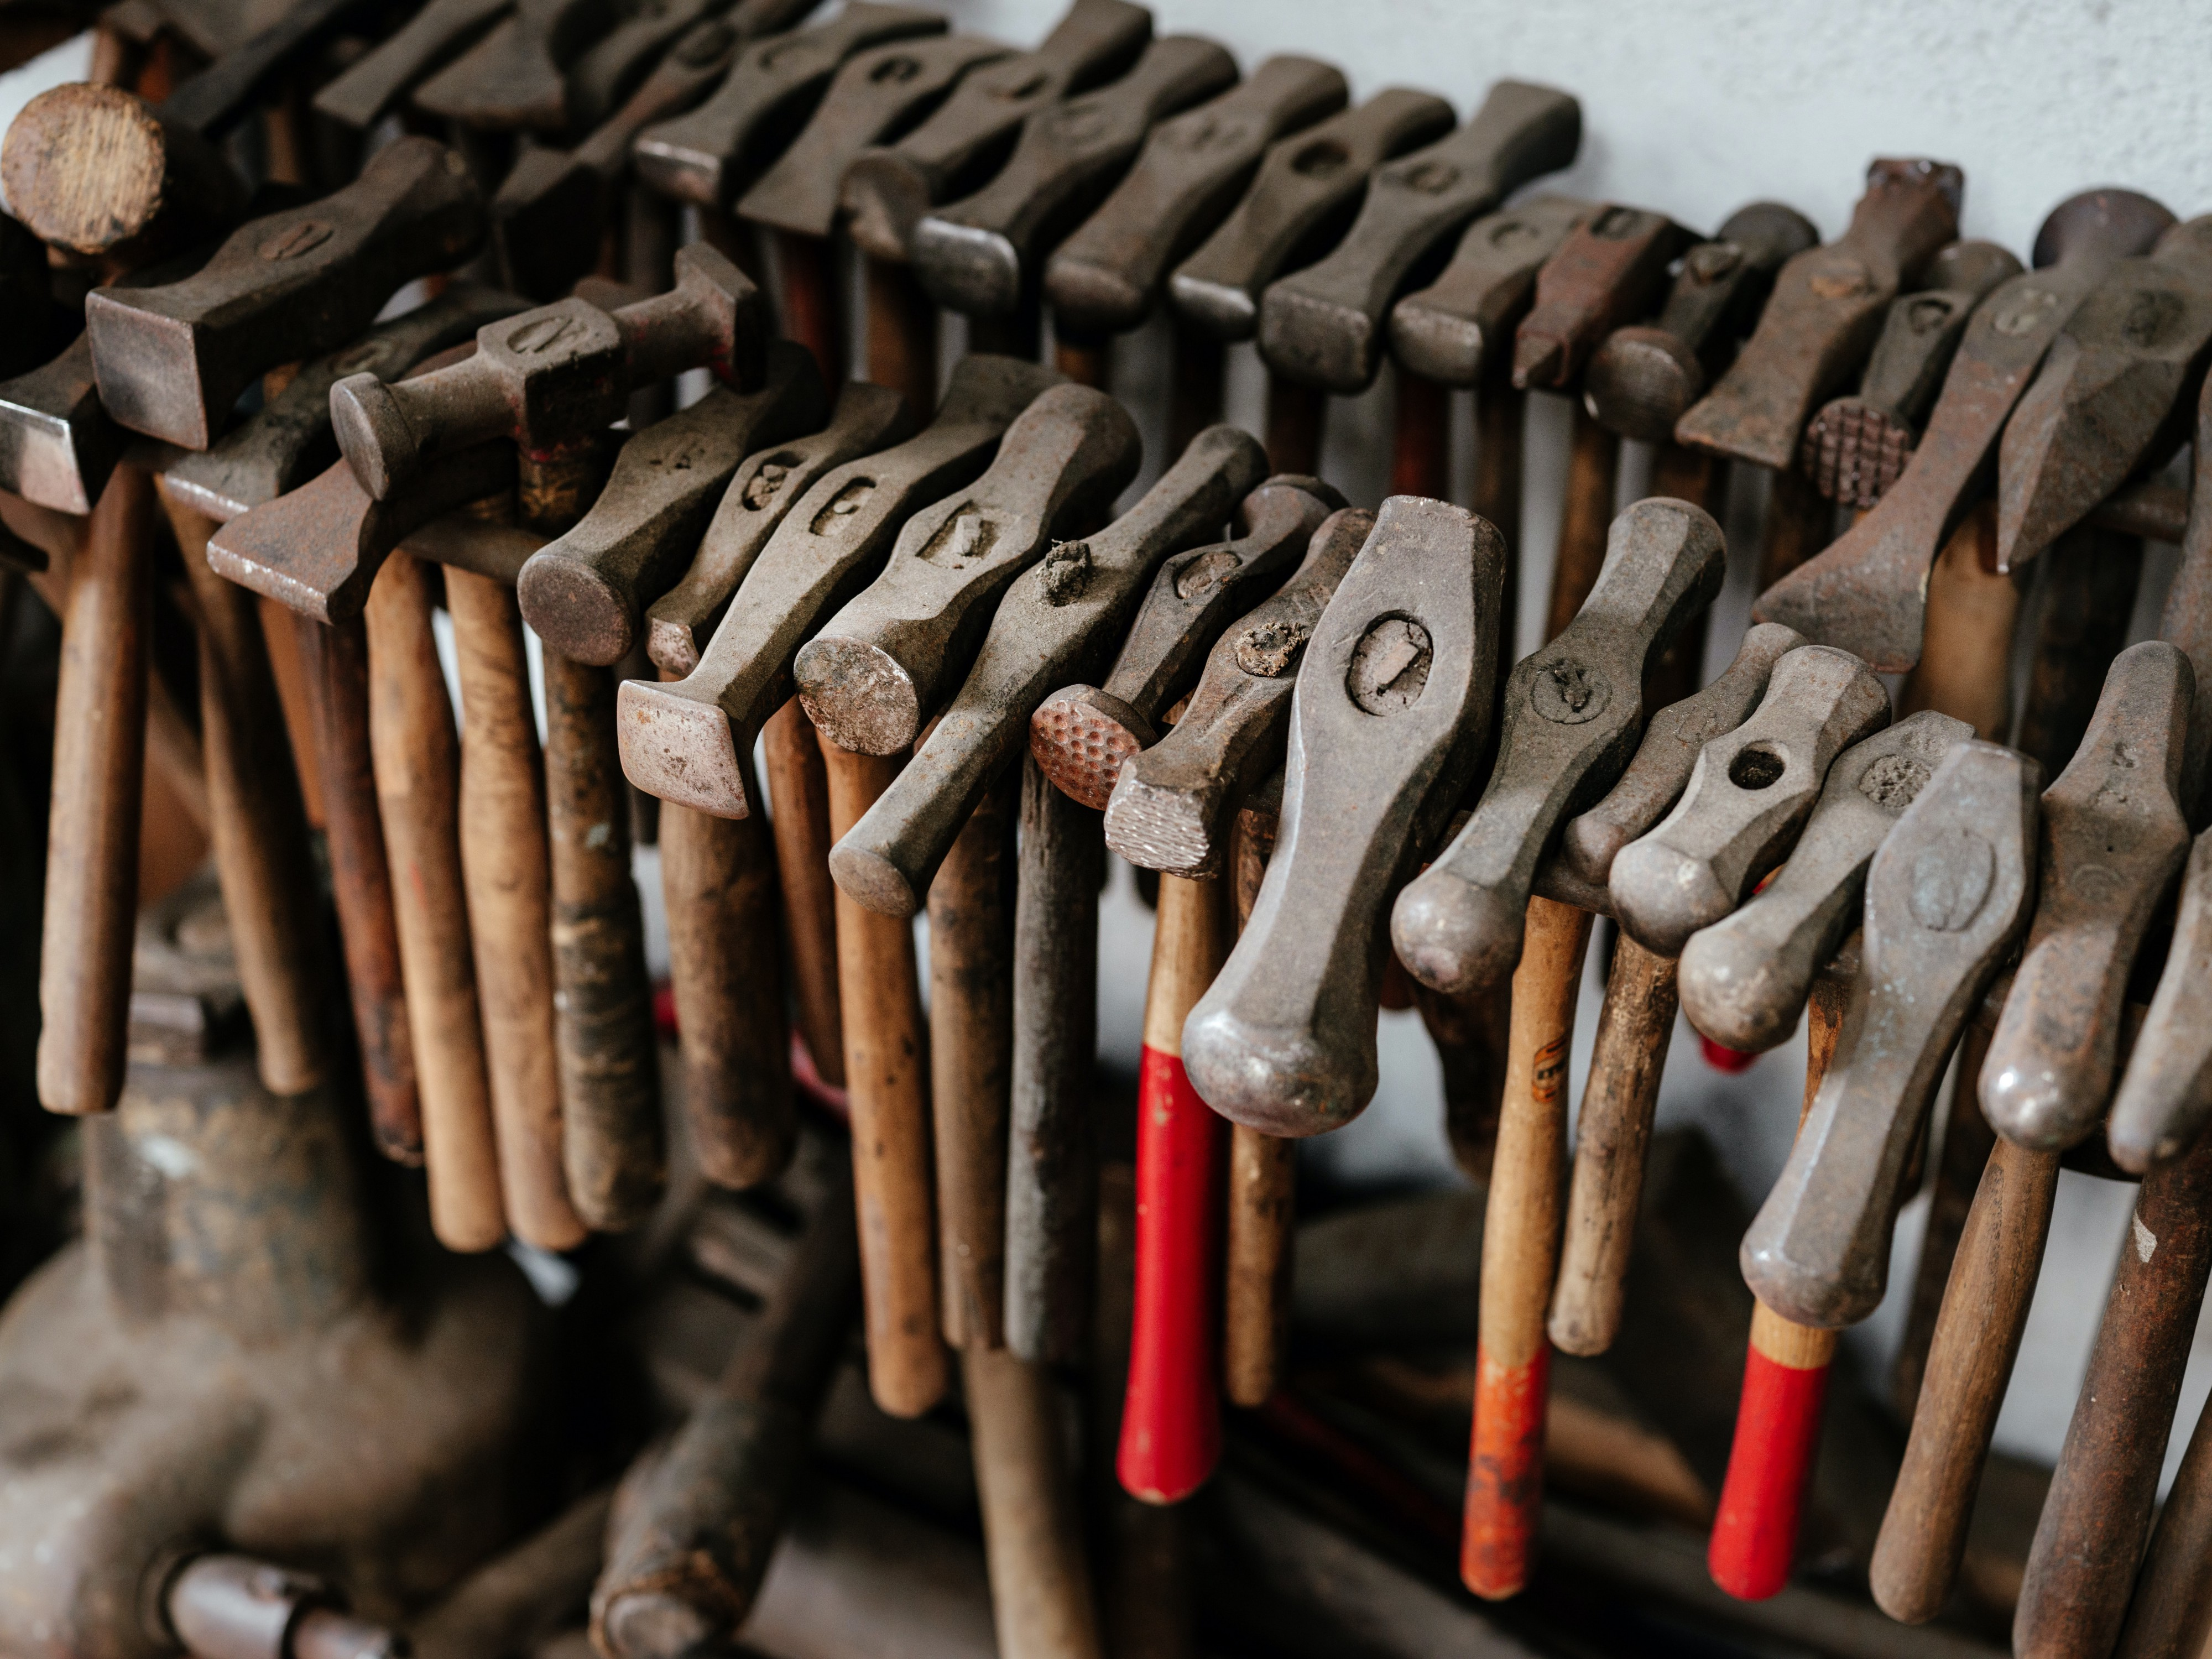 A rack full of different types of hammers